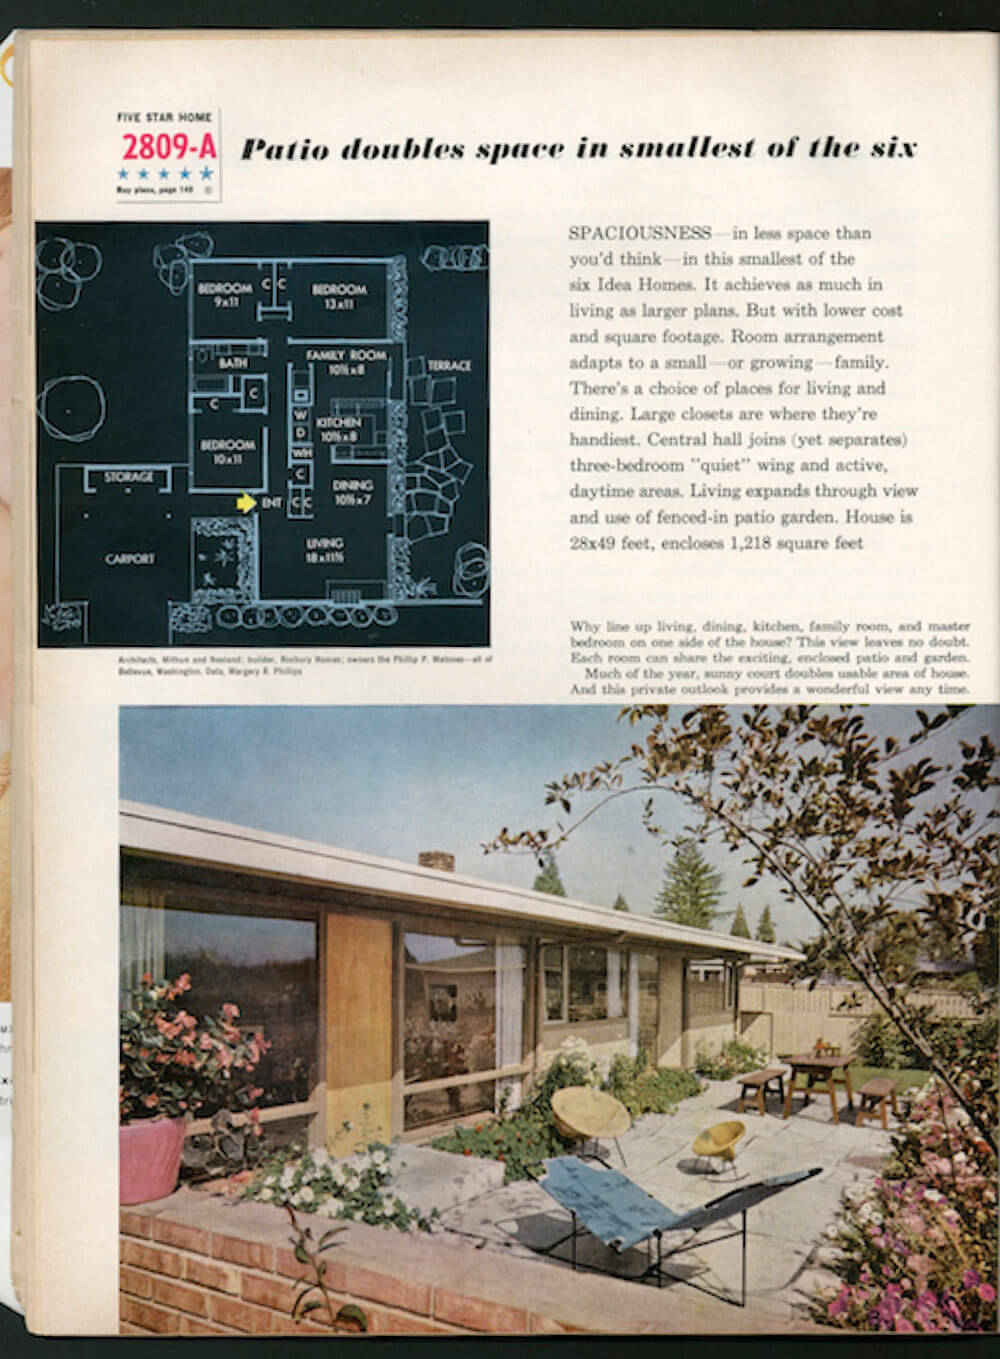 Better Homes Gardens 39 1958 Idea House Of The Year 39 By Omer Mithun Retro Renovation